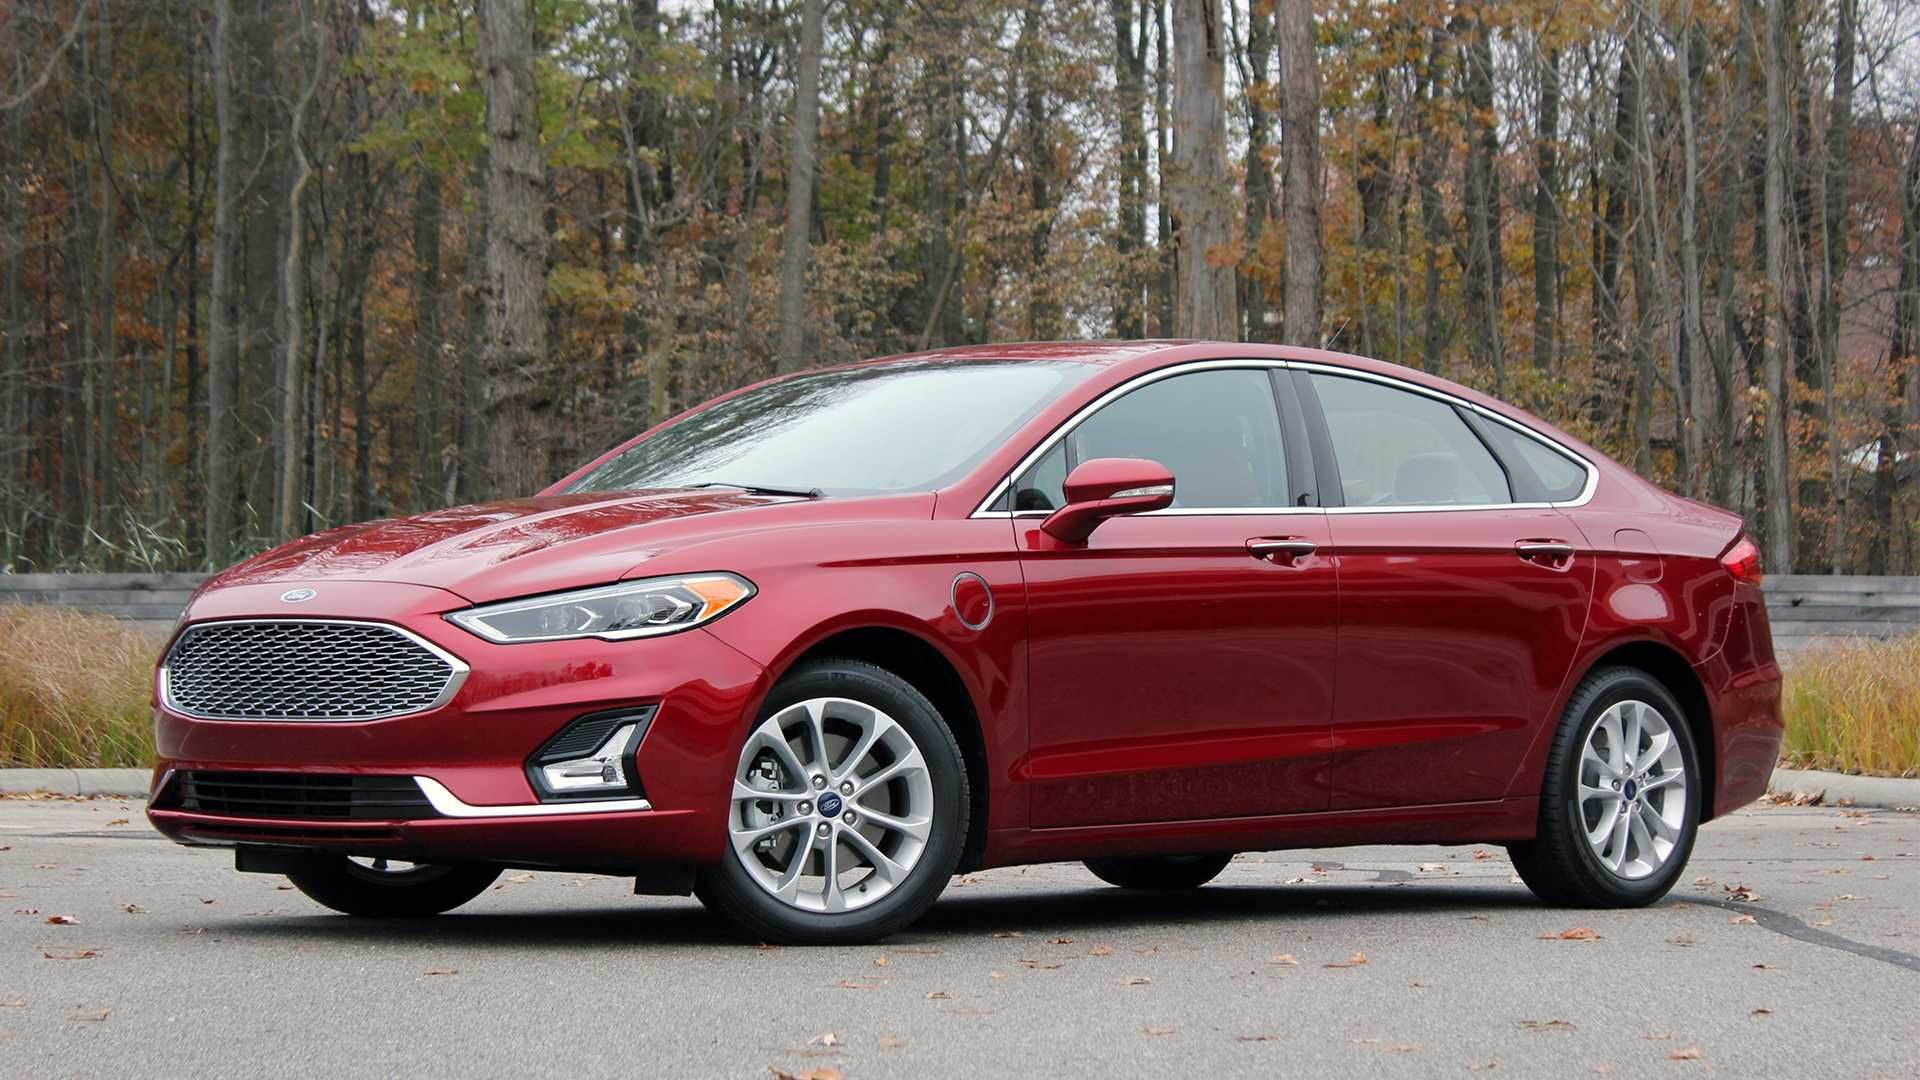 2021 ford fusion hybrid - new cars review